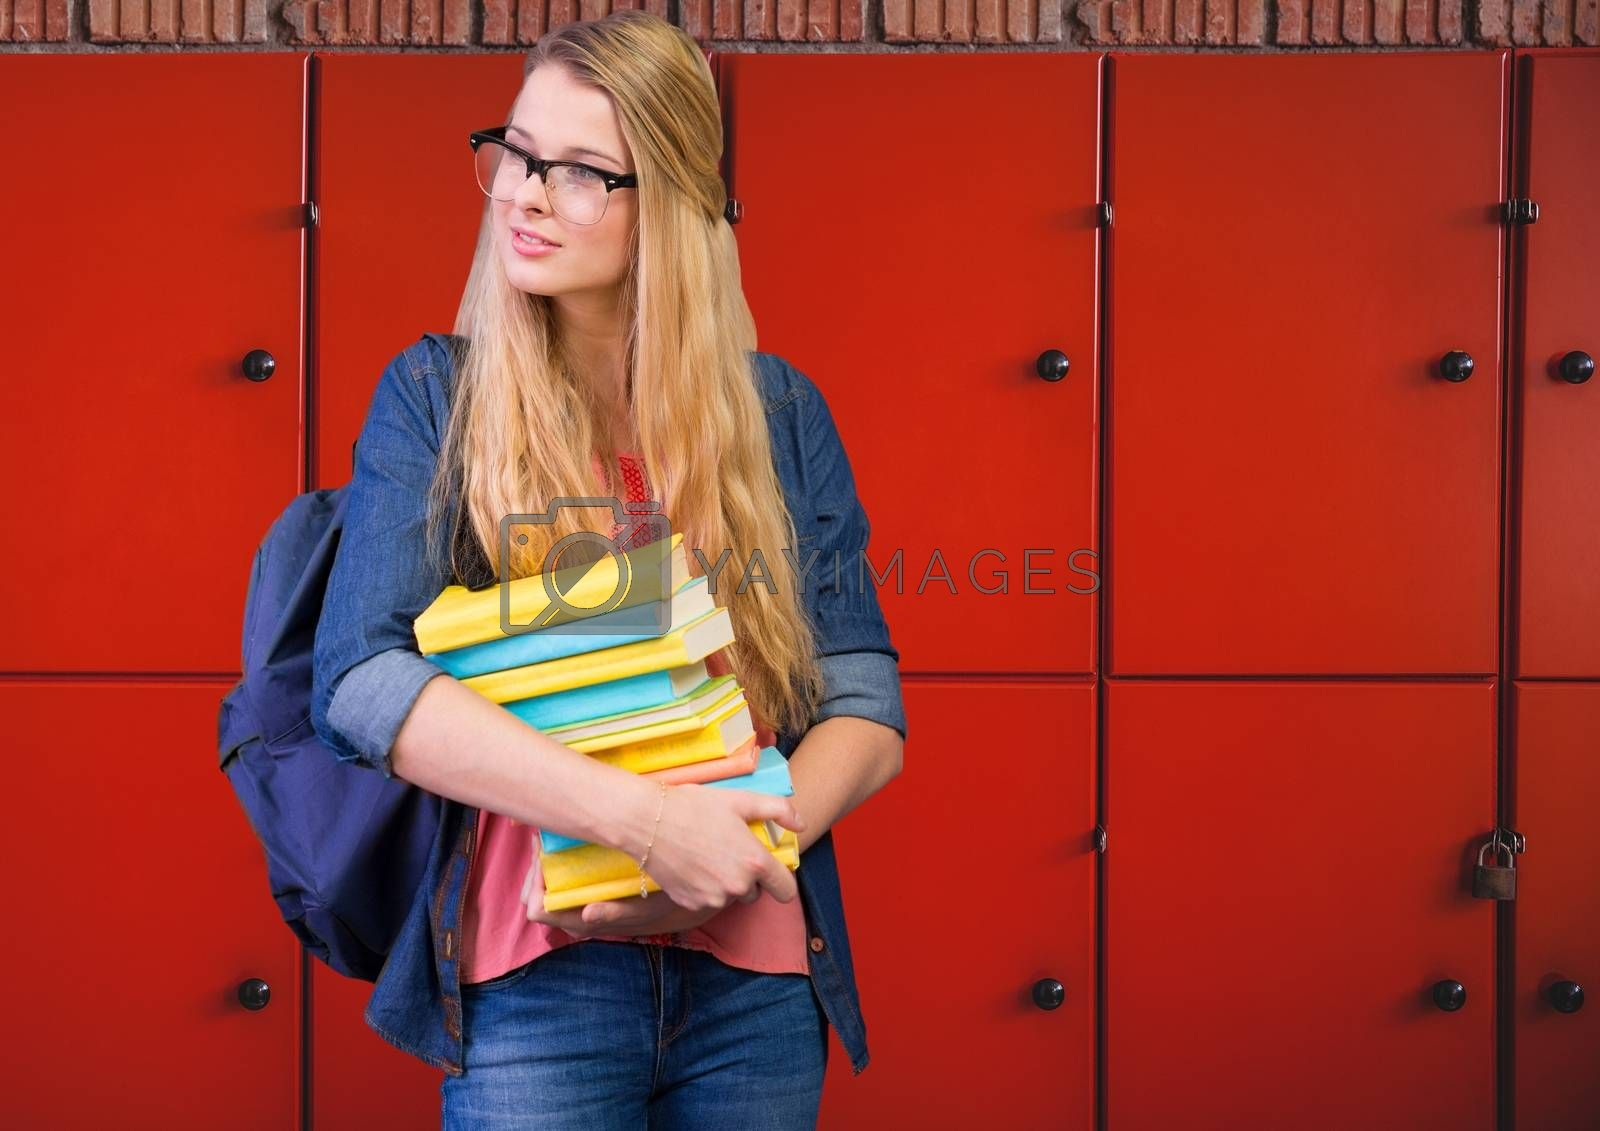 male student holding books in front of lockers by Wavebreakmedia